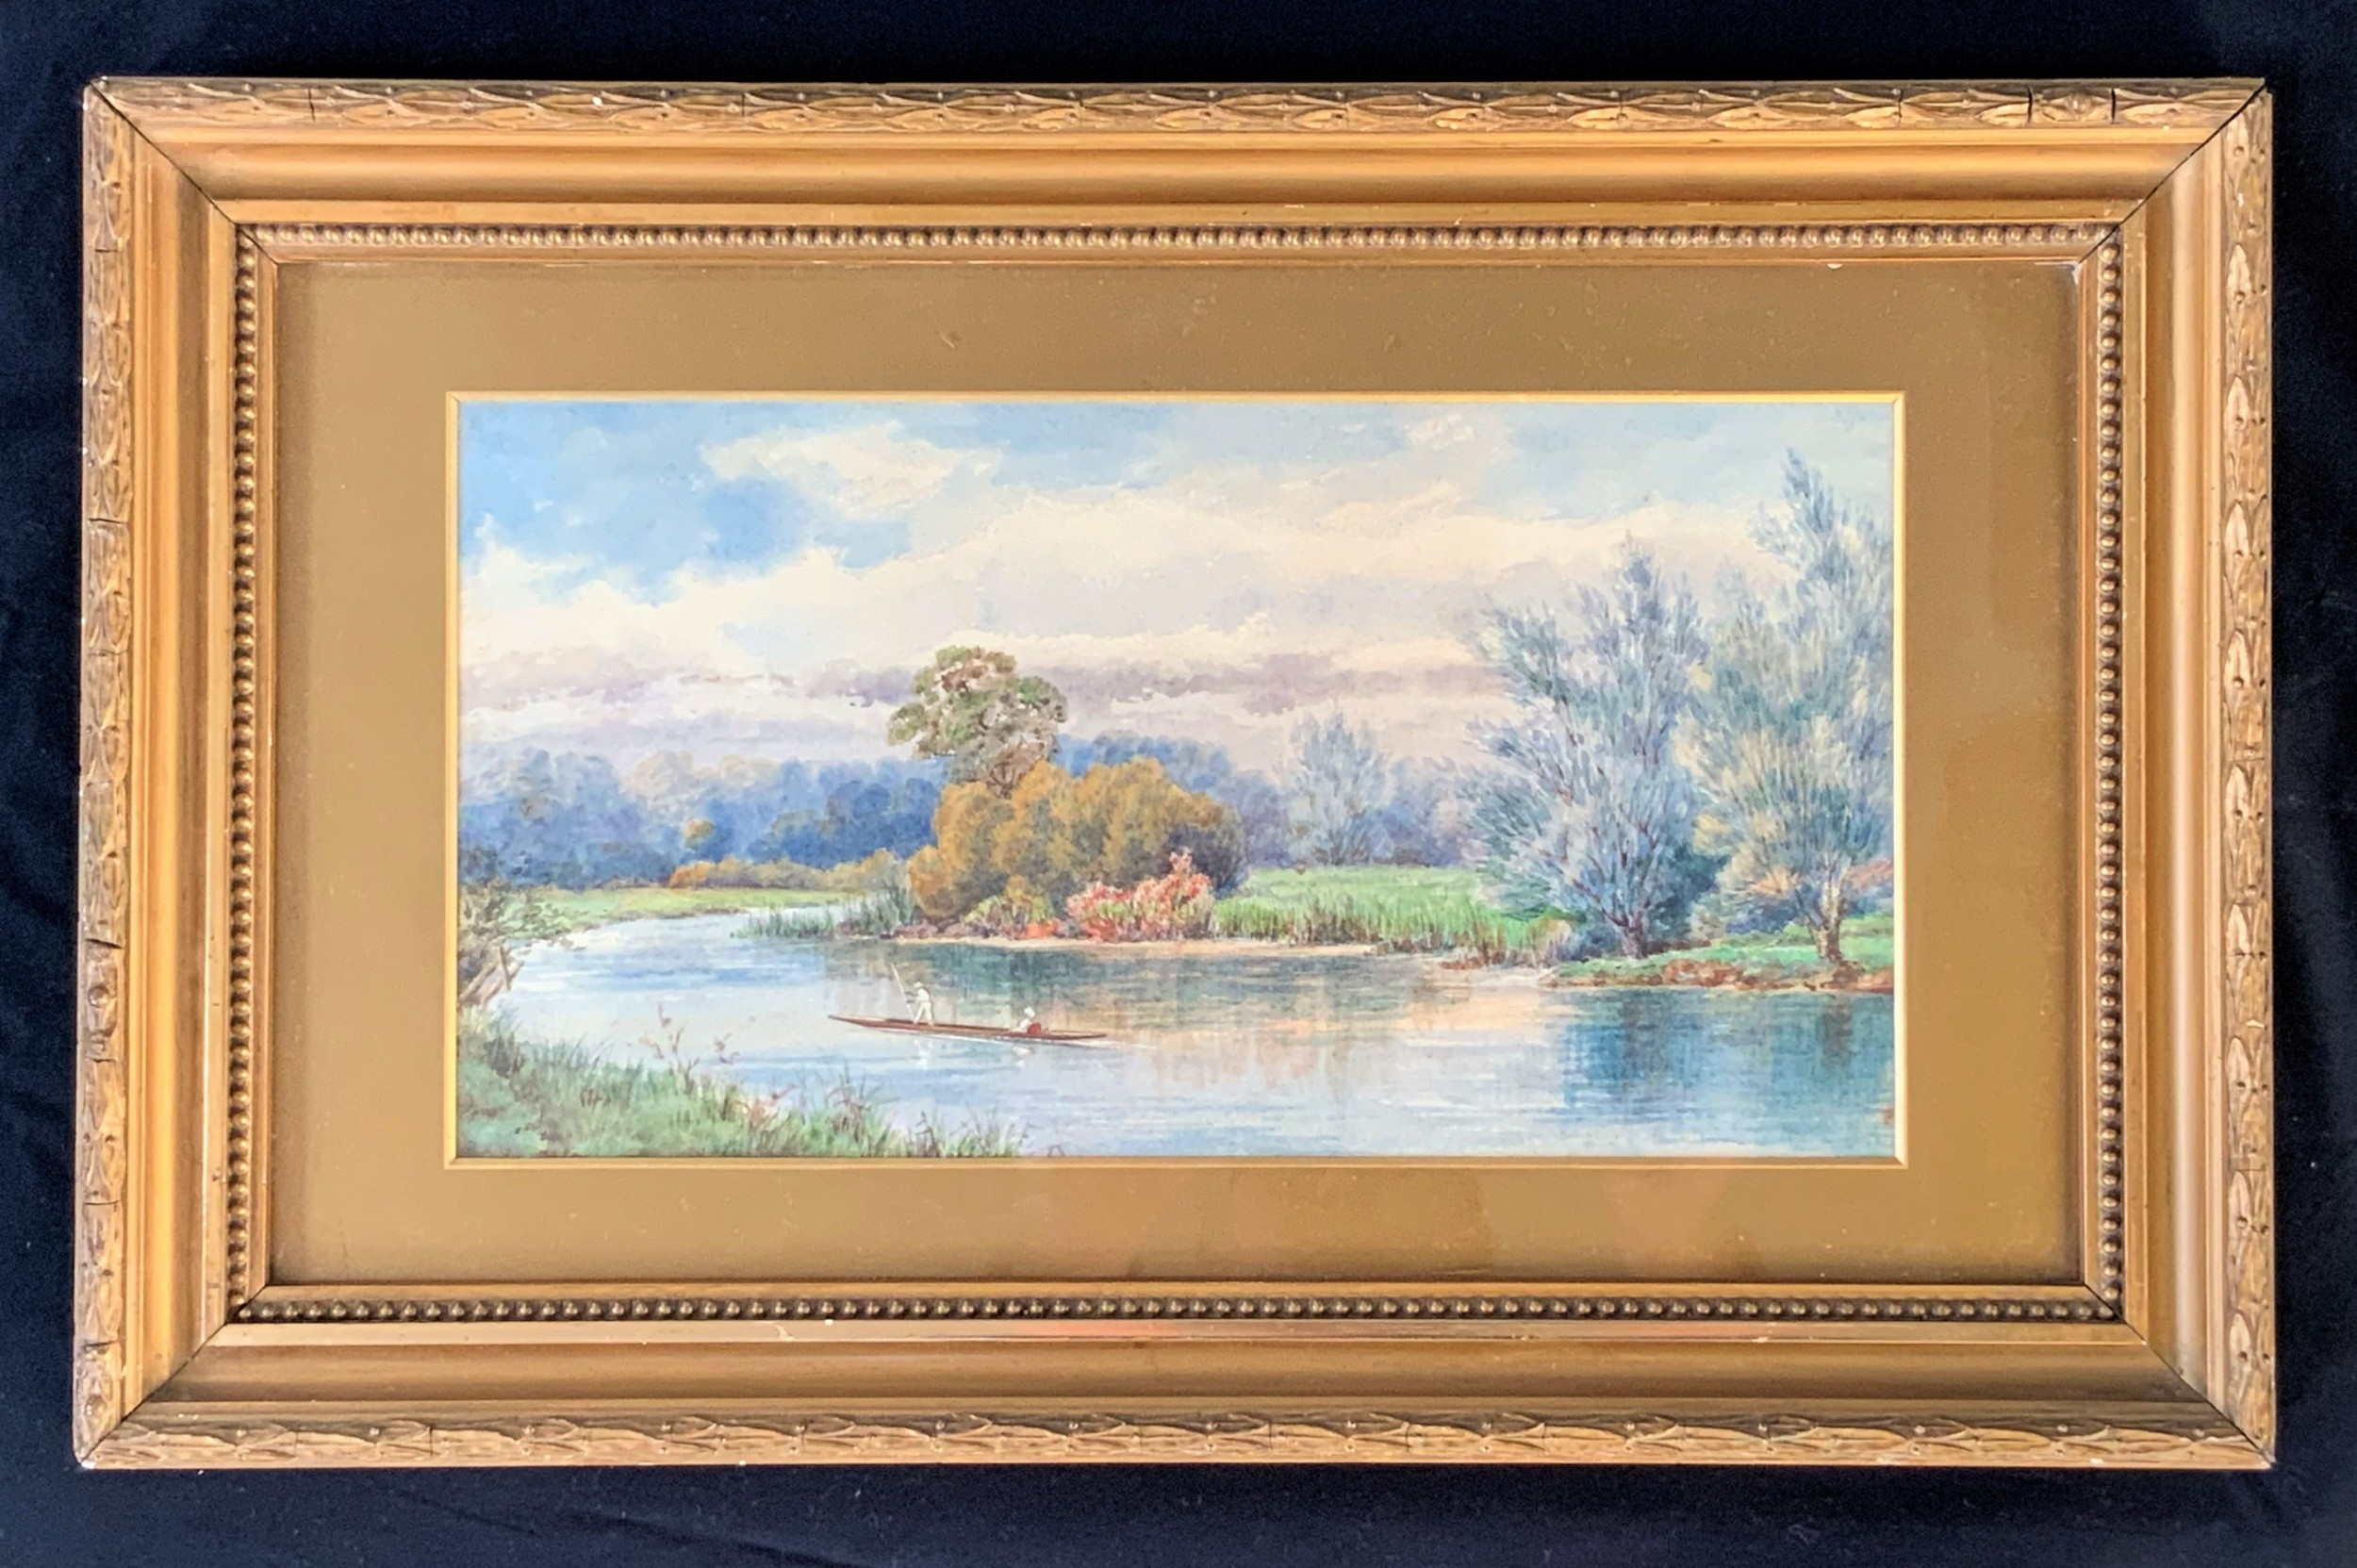 'punting on the colne' early 1900s english river landscape watercolour painting